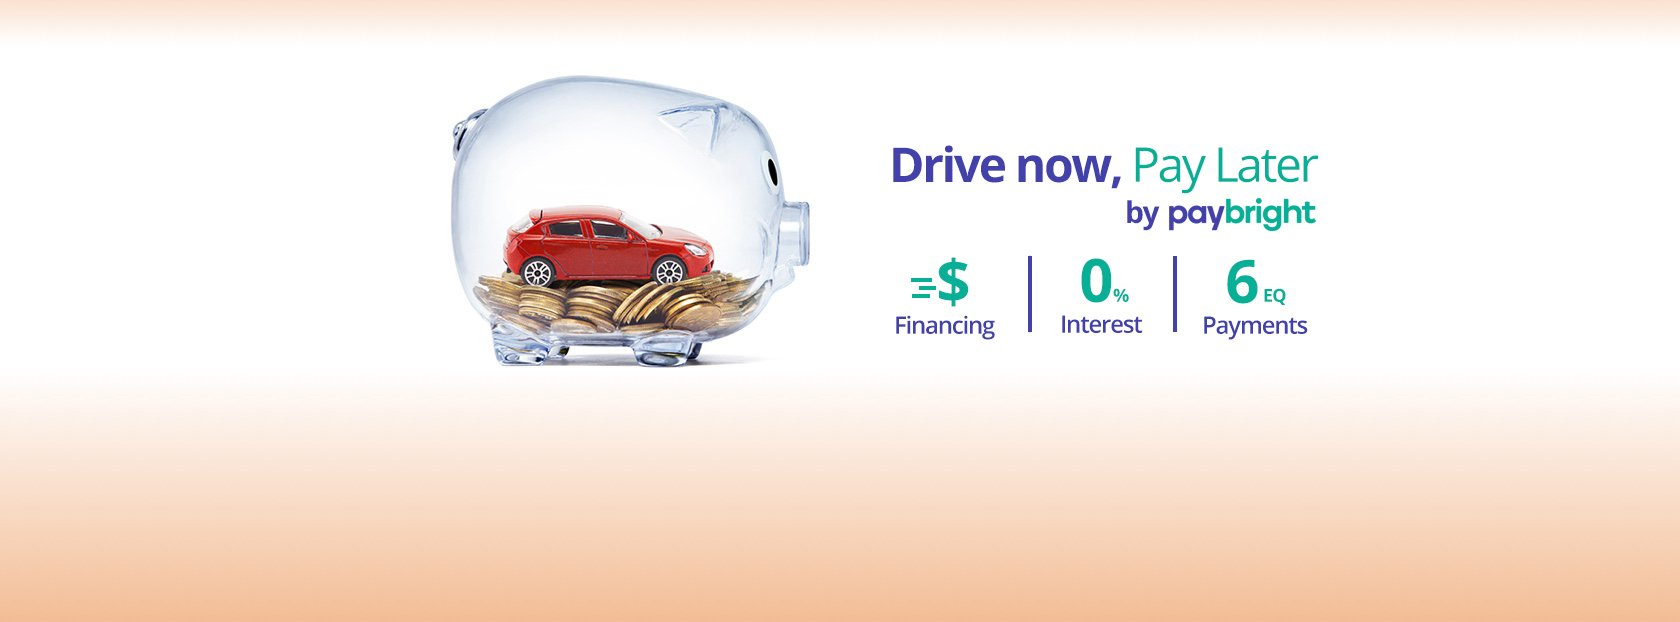 https://www.canadawheels.ca/financing-paybright